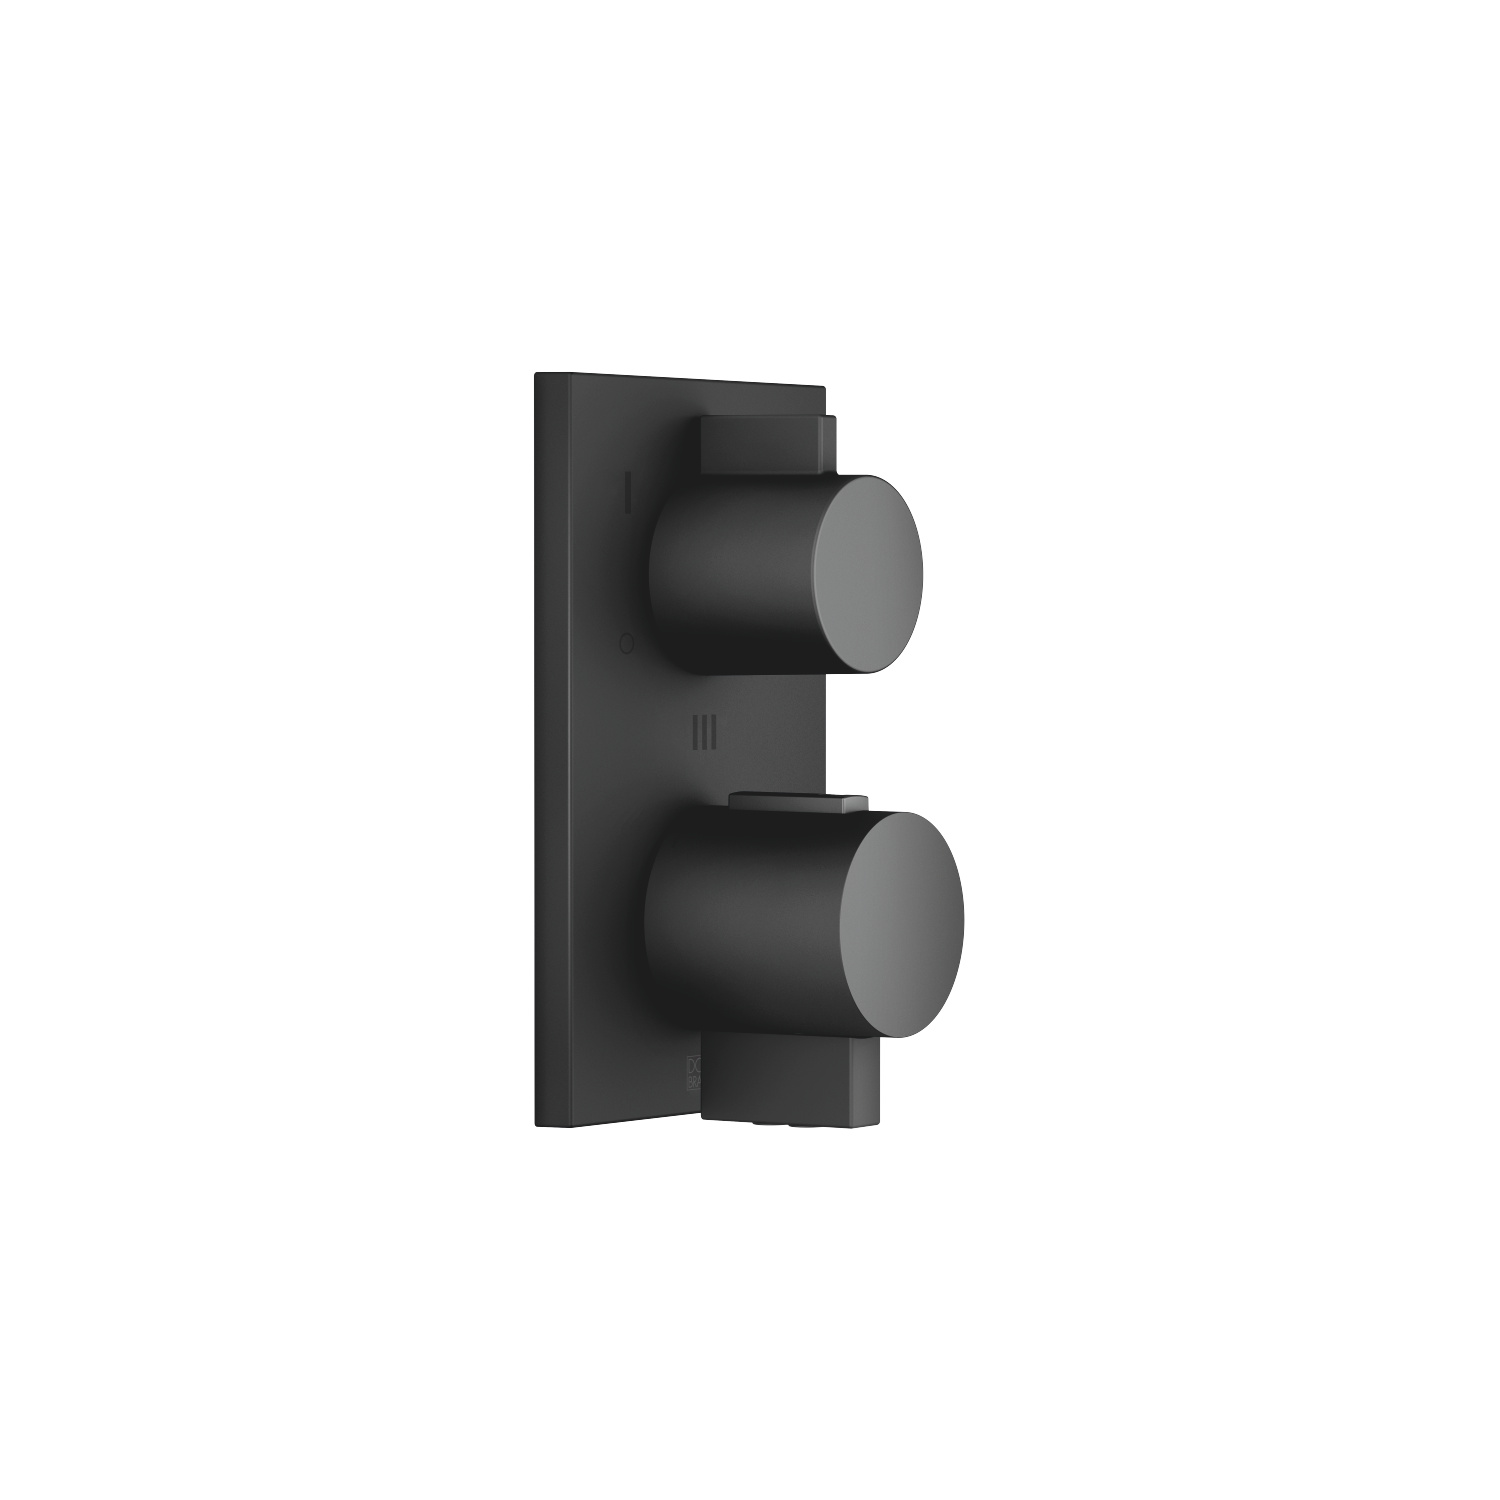 Concealed thermostat with three-way volume control - black matte